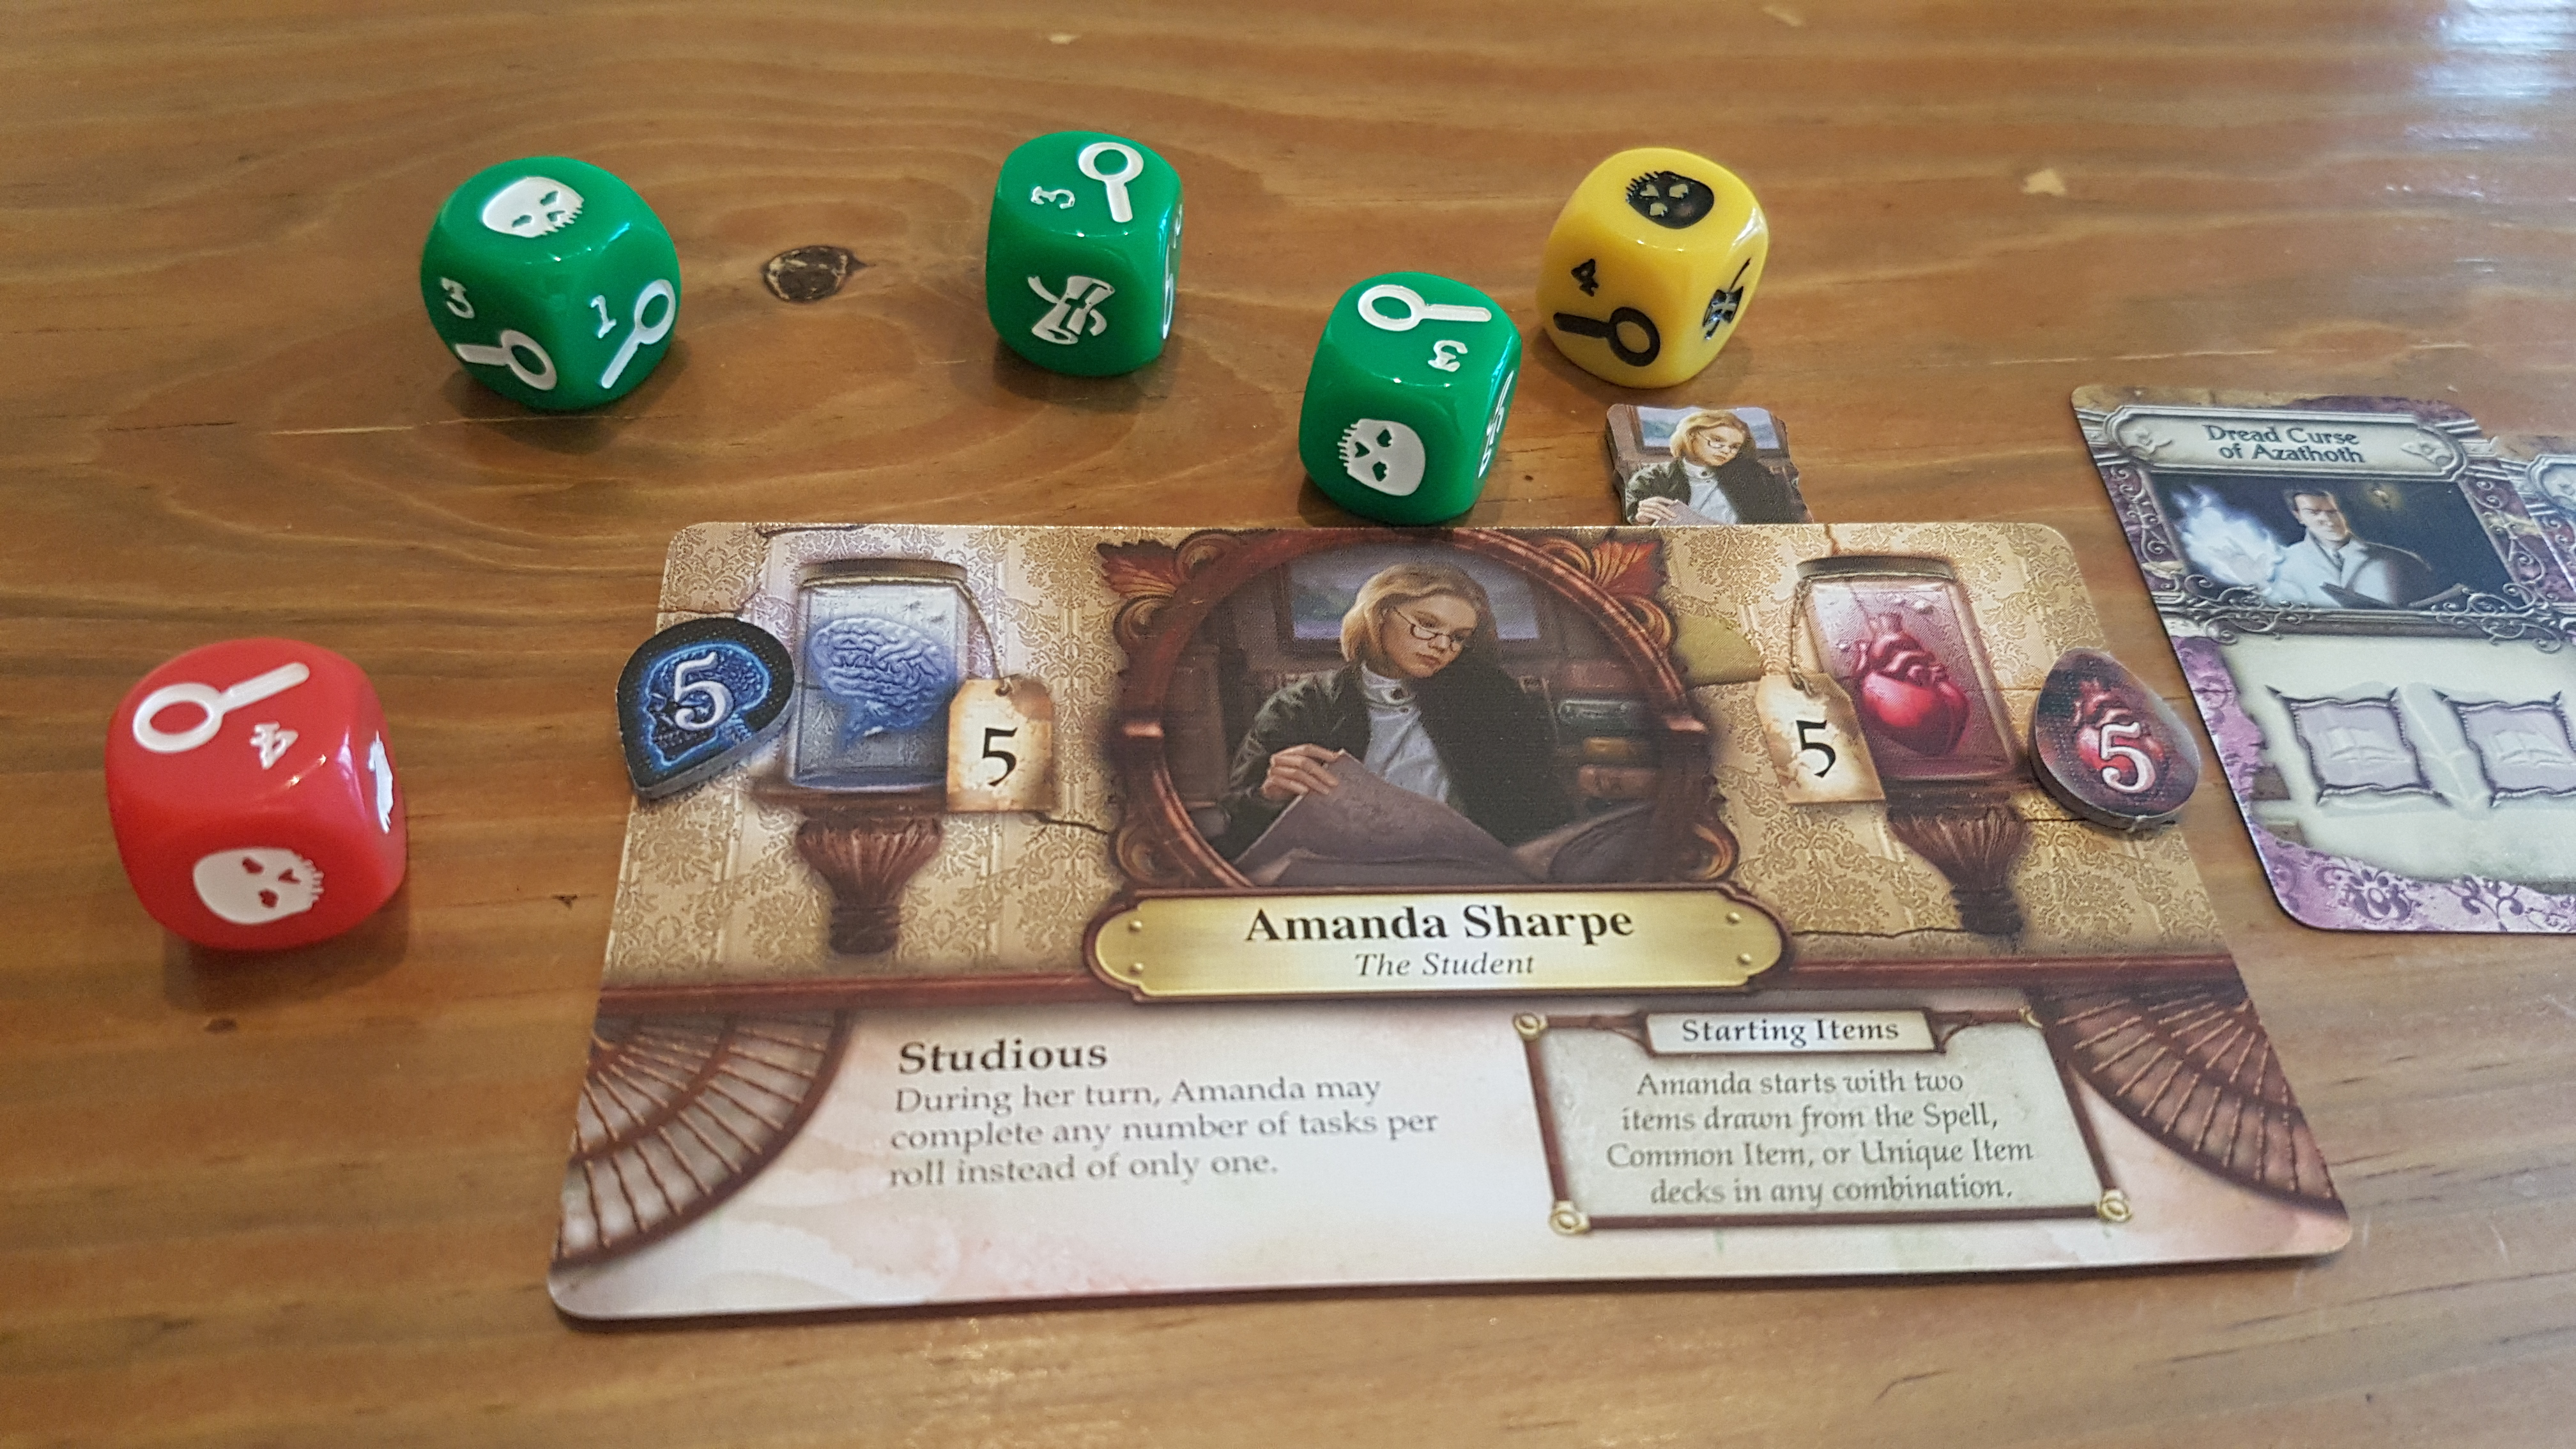 Elder Sign Review - It's Worth Saving The World - Just Push